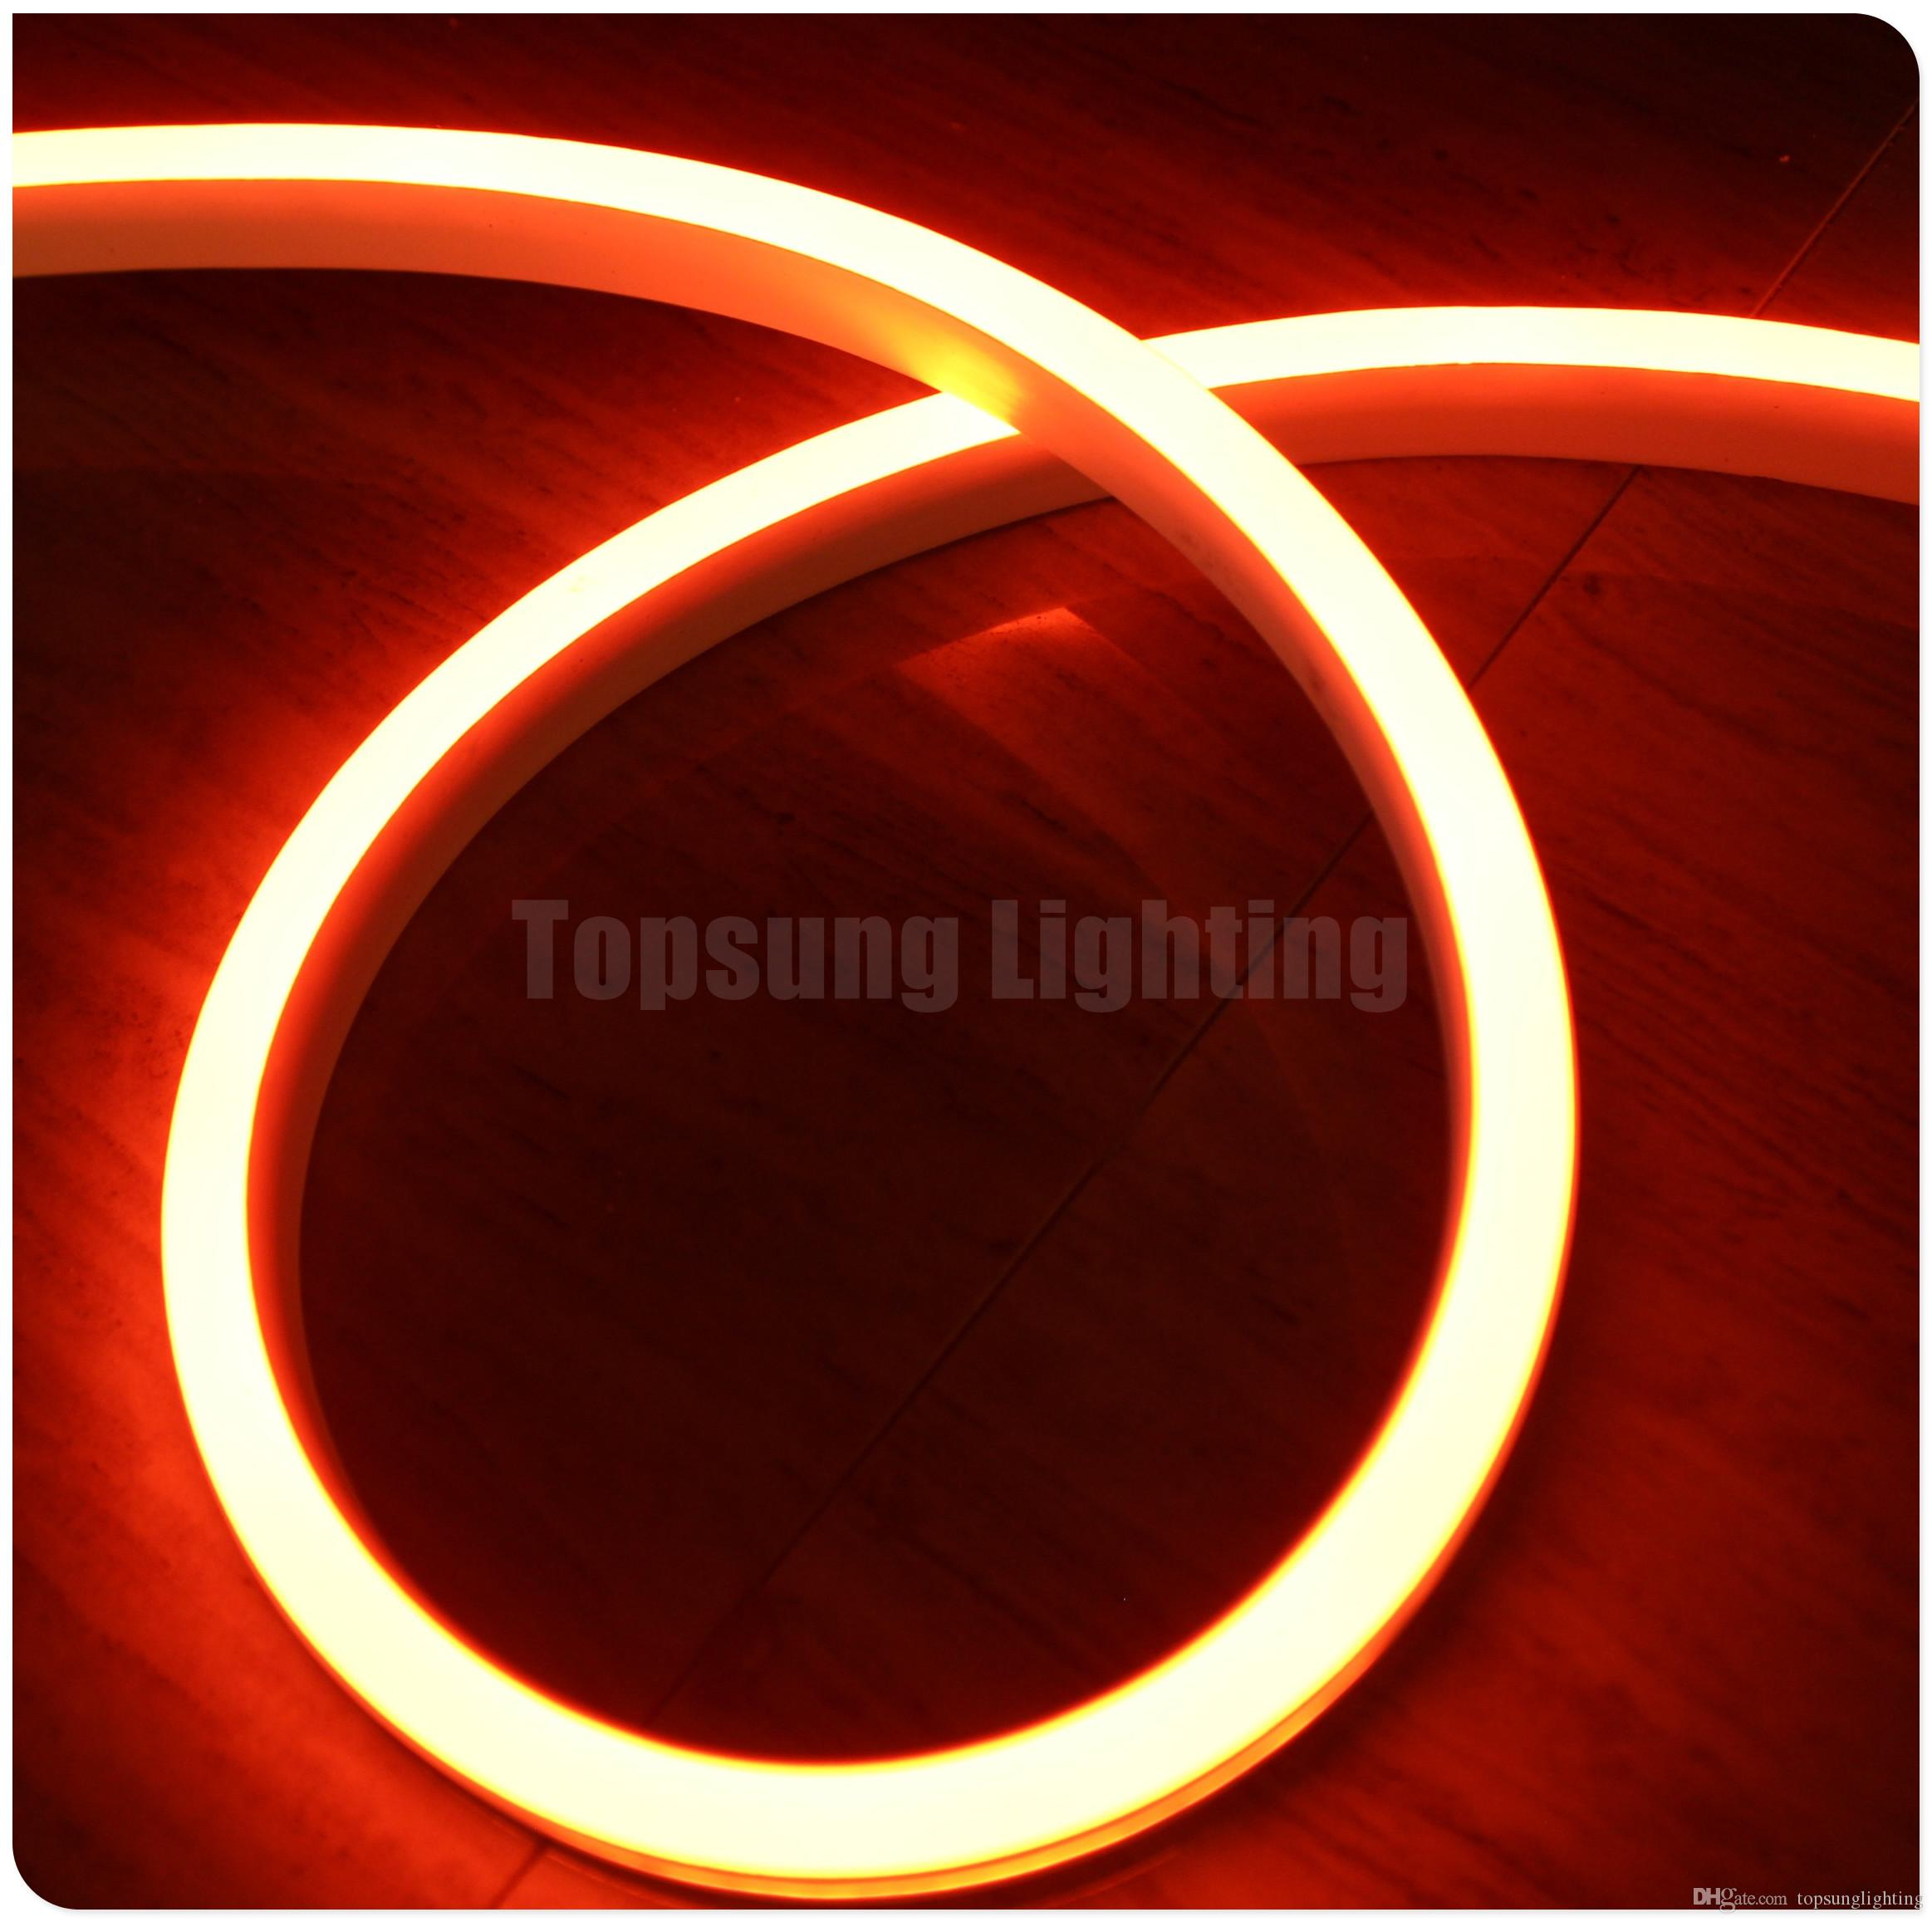 Newest style 50m 12v spool flexible strip flat ultra thin orange led newest style 50m 12v spool flexible strip flat ultra thin orange led neon lighting neon flex rope 2835smd flat led neon led neon flexible ultra thin led aloadofball Image collections